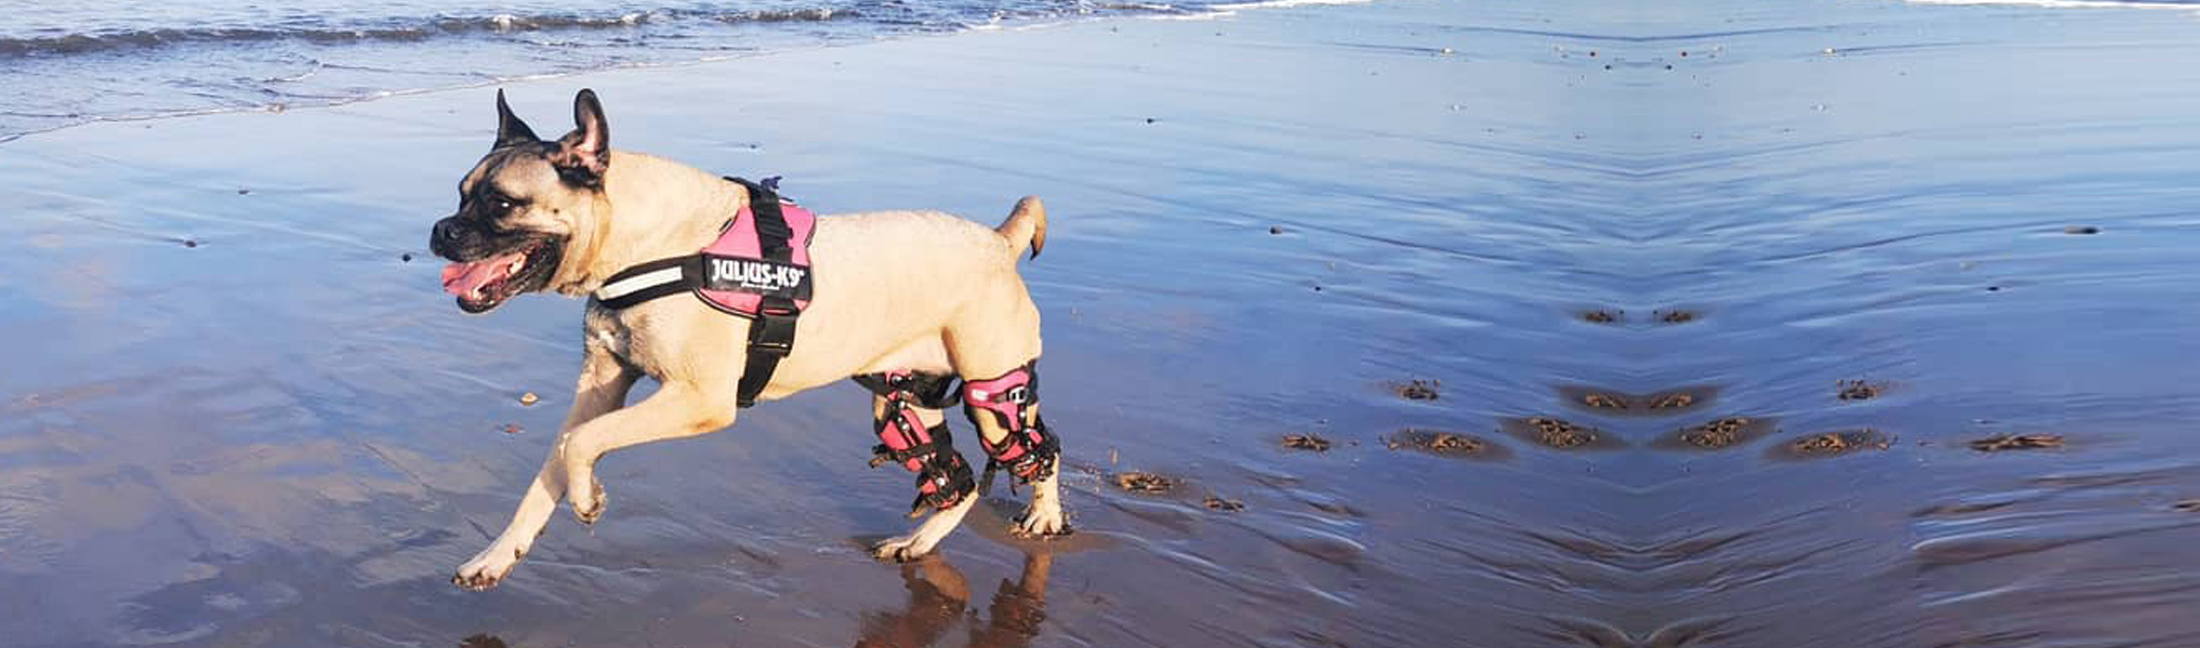 Posh Dog Knee Brace